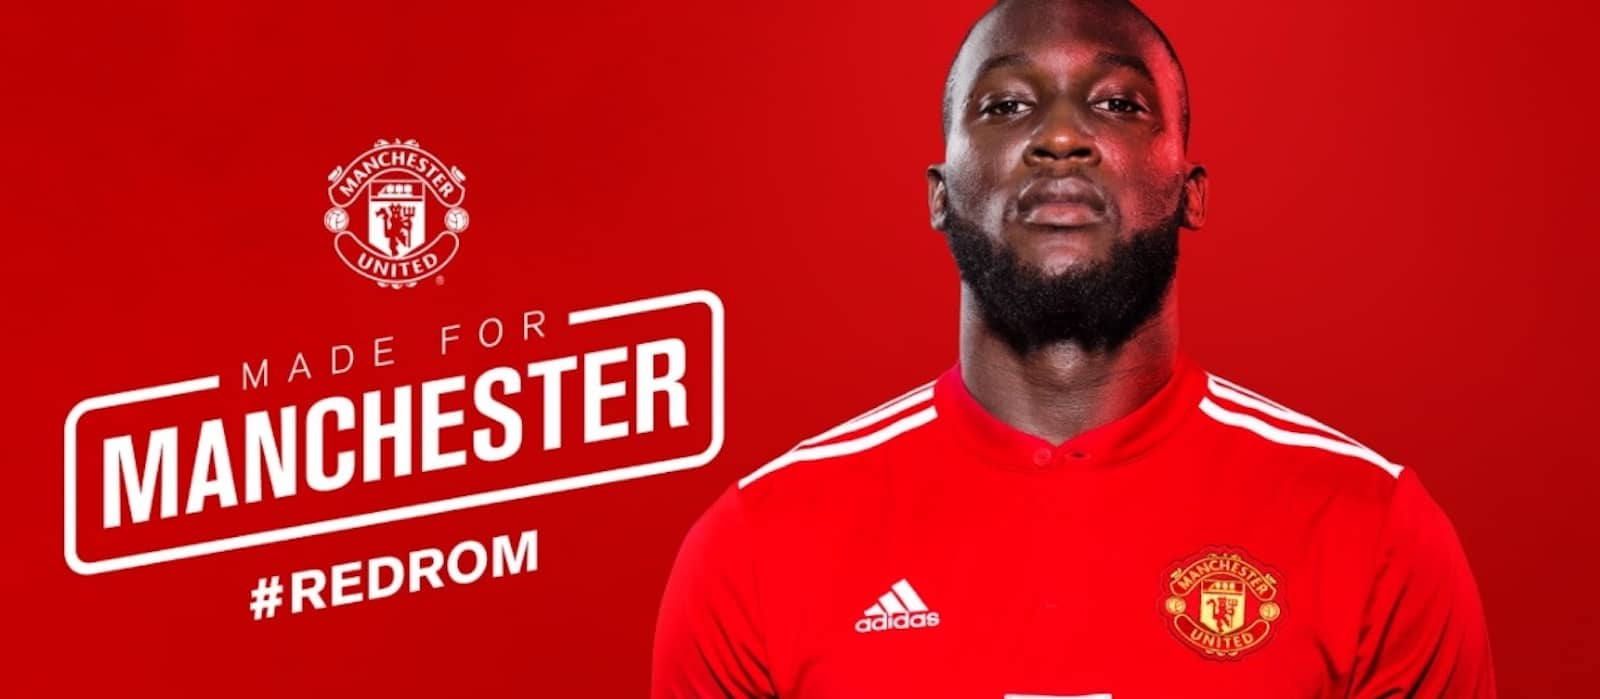 Picture: Romelu Lukaku in his Manchester United shirt for the first time